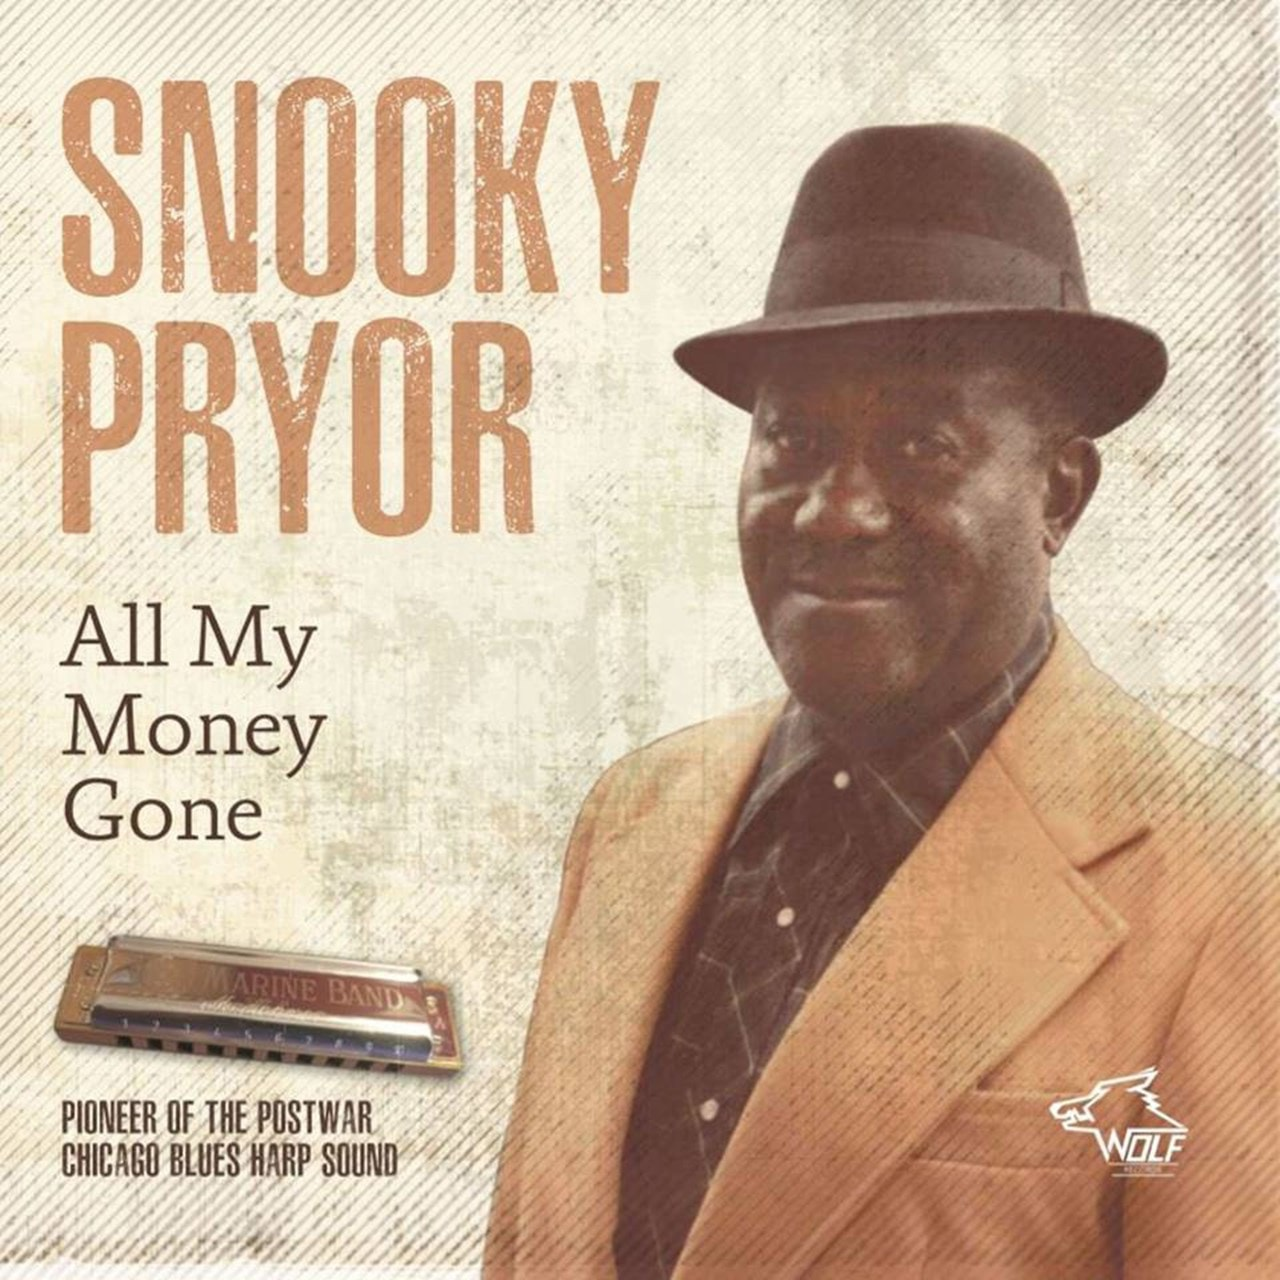 All My Money Gone: Pioneer of the Postwar Chicago Blues Harp Sound - 1